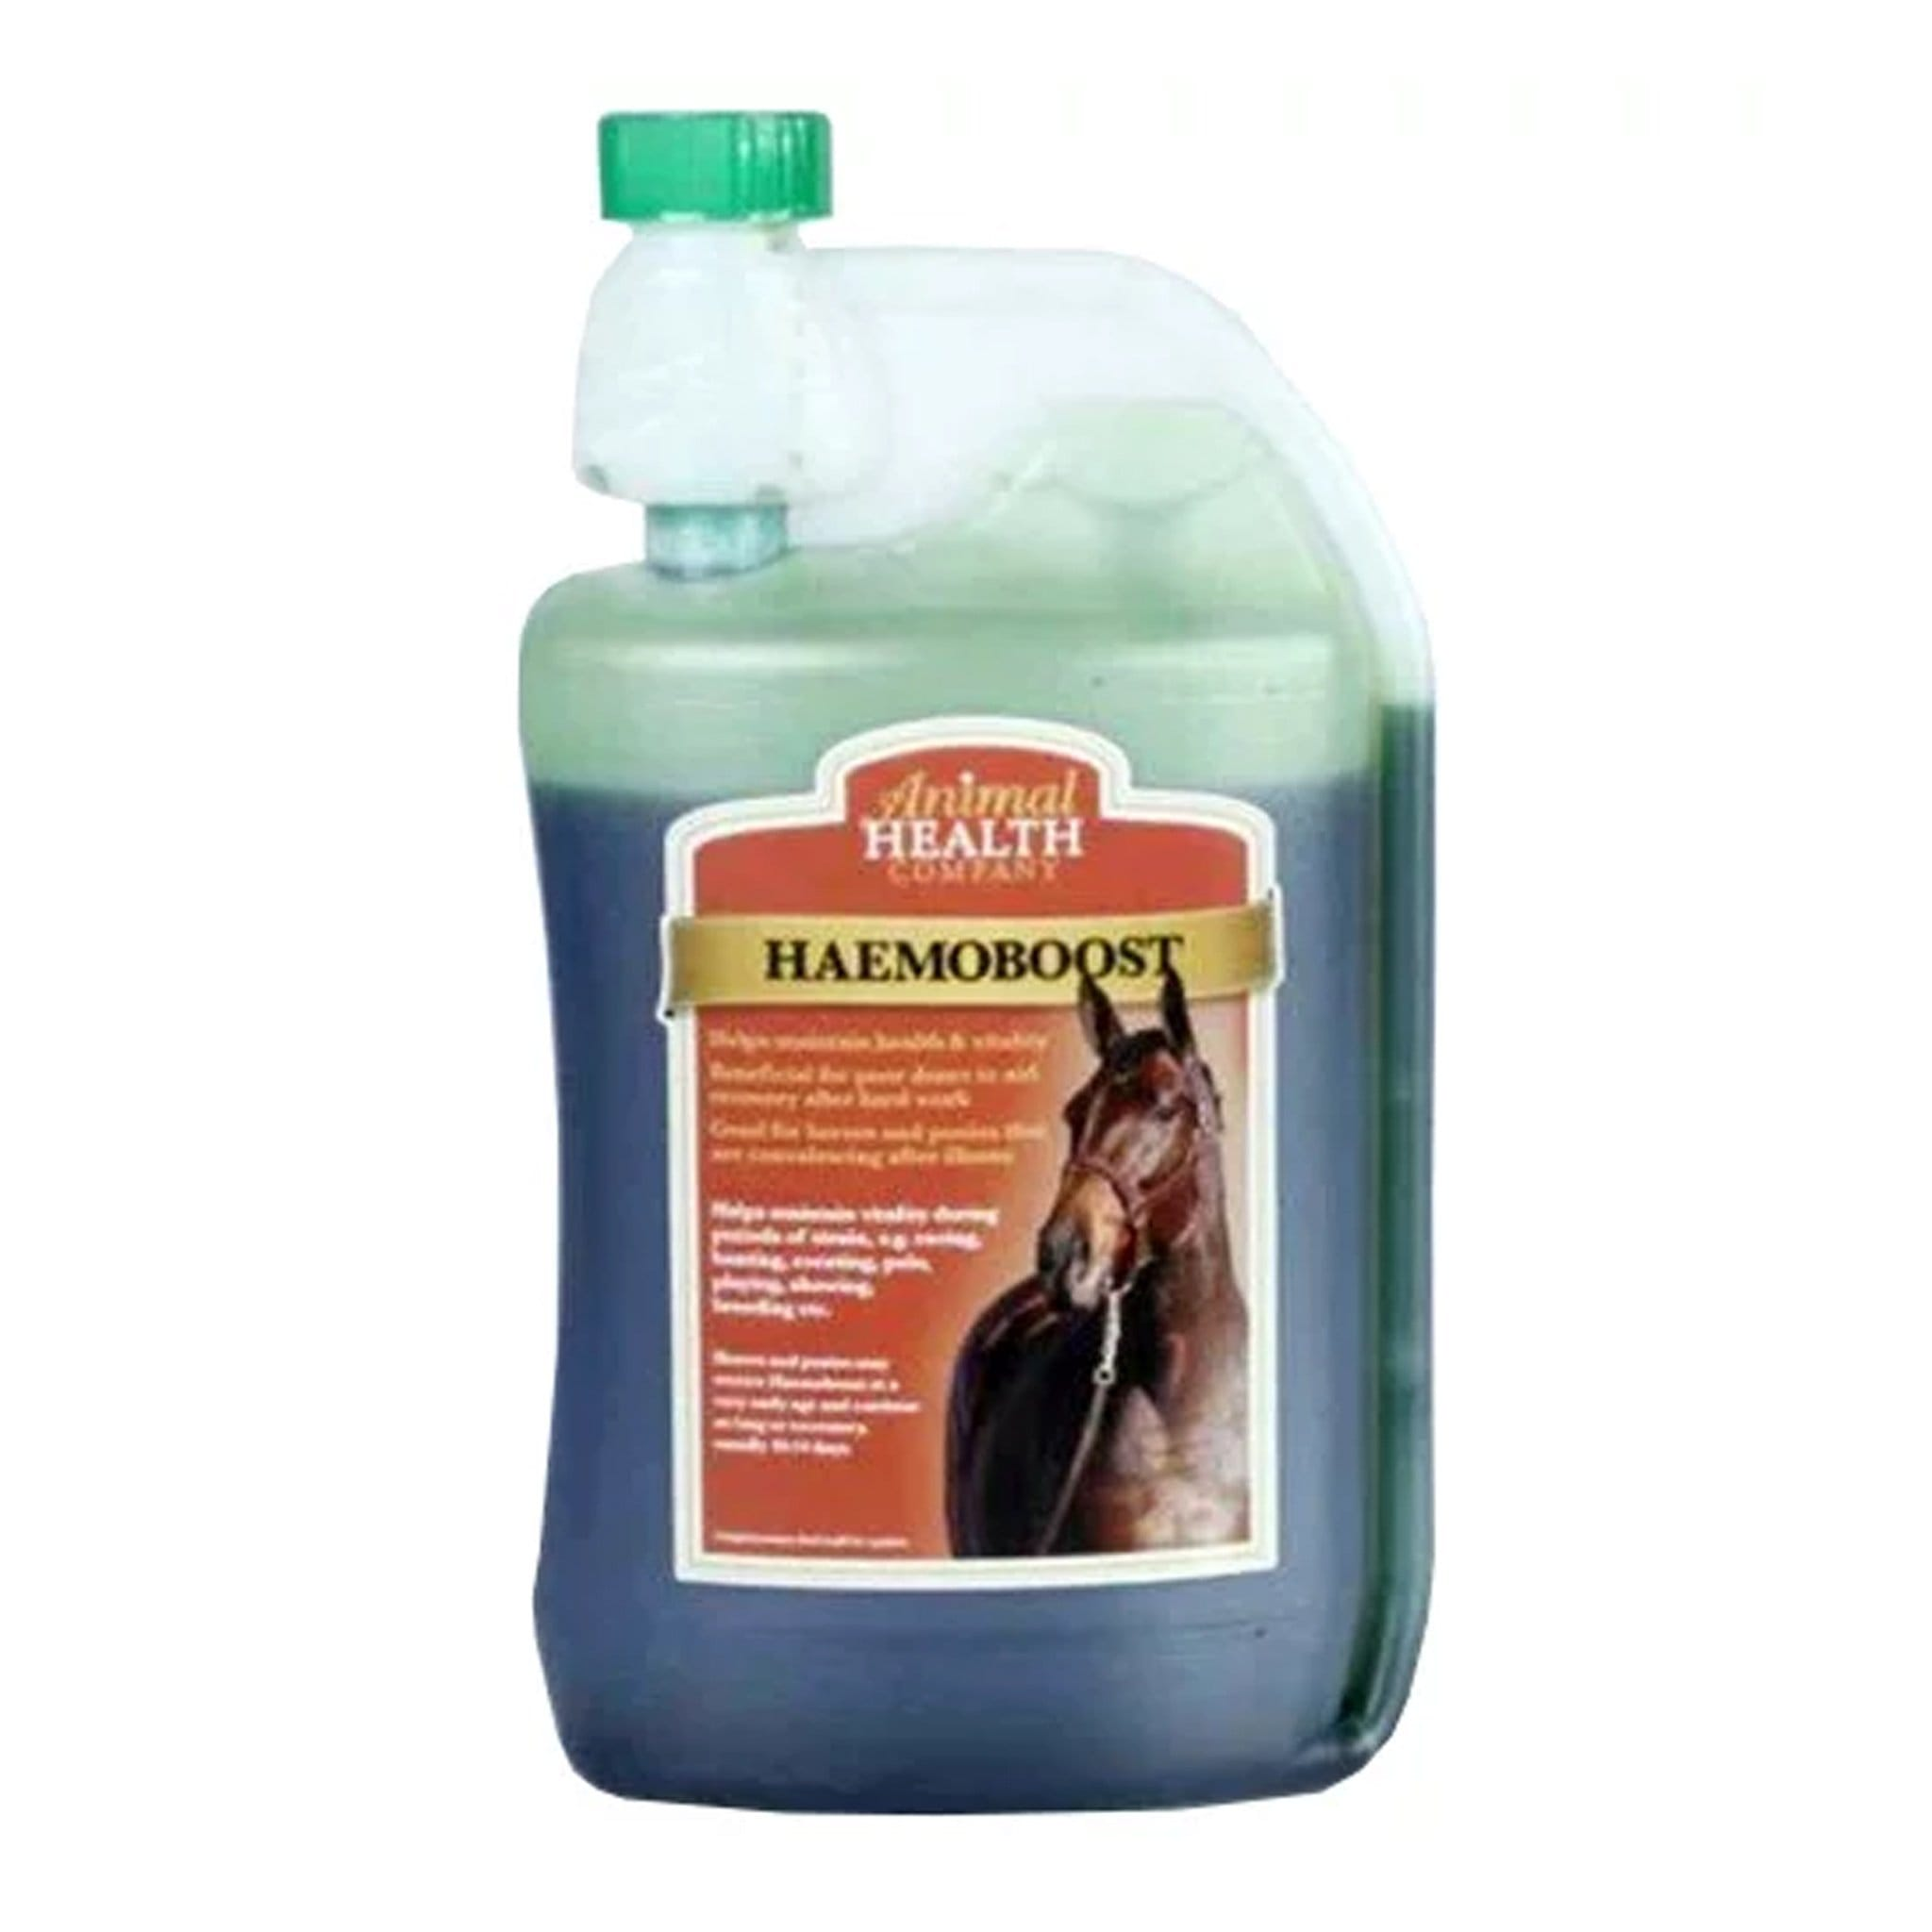 Animal Health Company Haemoboost Supplement 1 Litre SPE0002